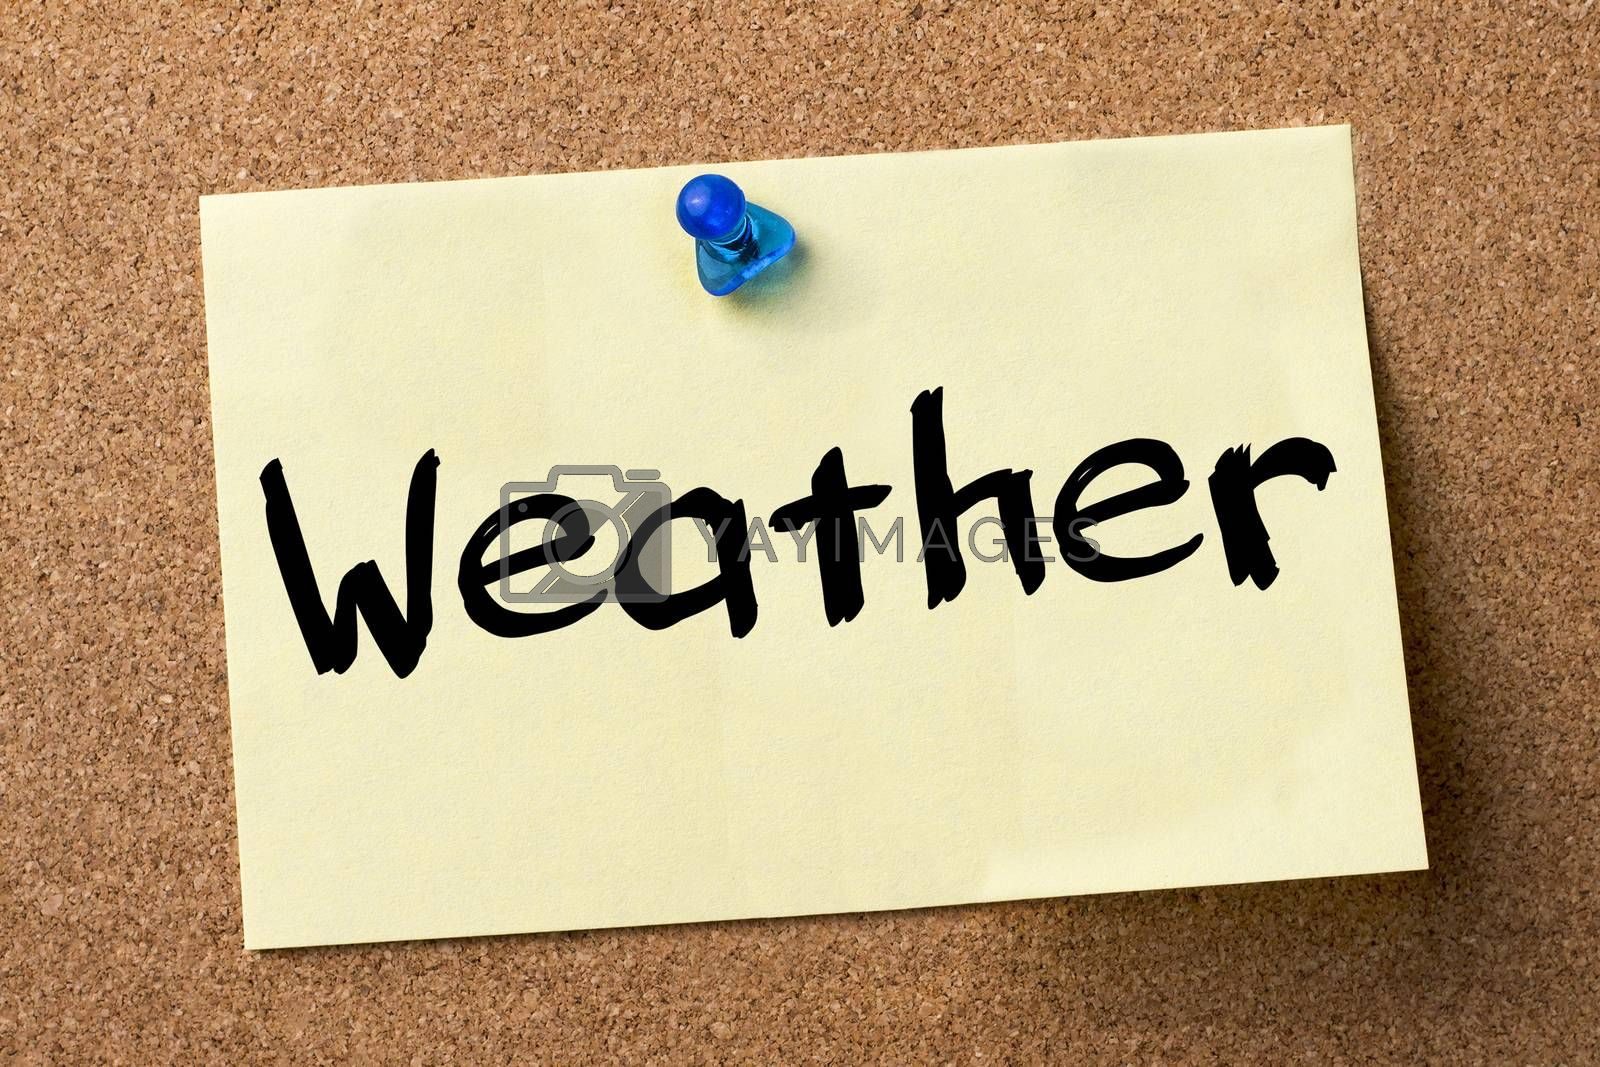 Weather - adhesive label pinned on bulletin board - horizontal image